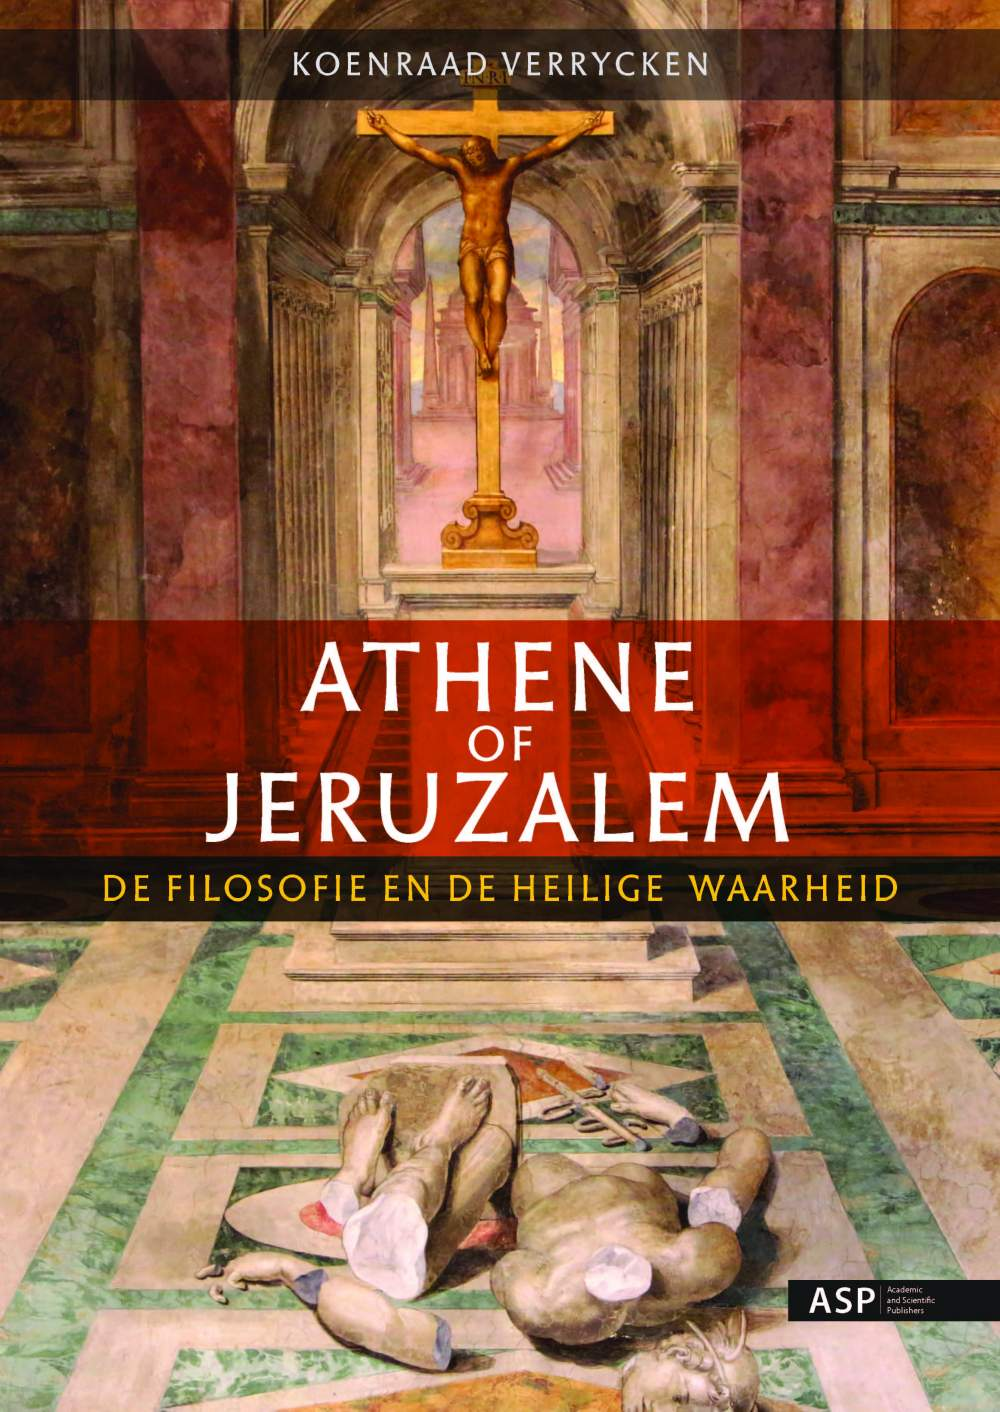 ATHENE OF JERUZALEM